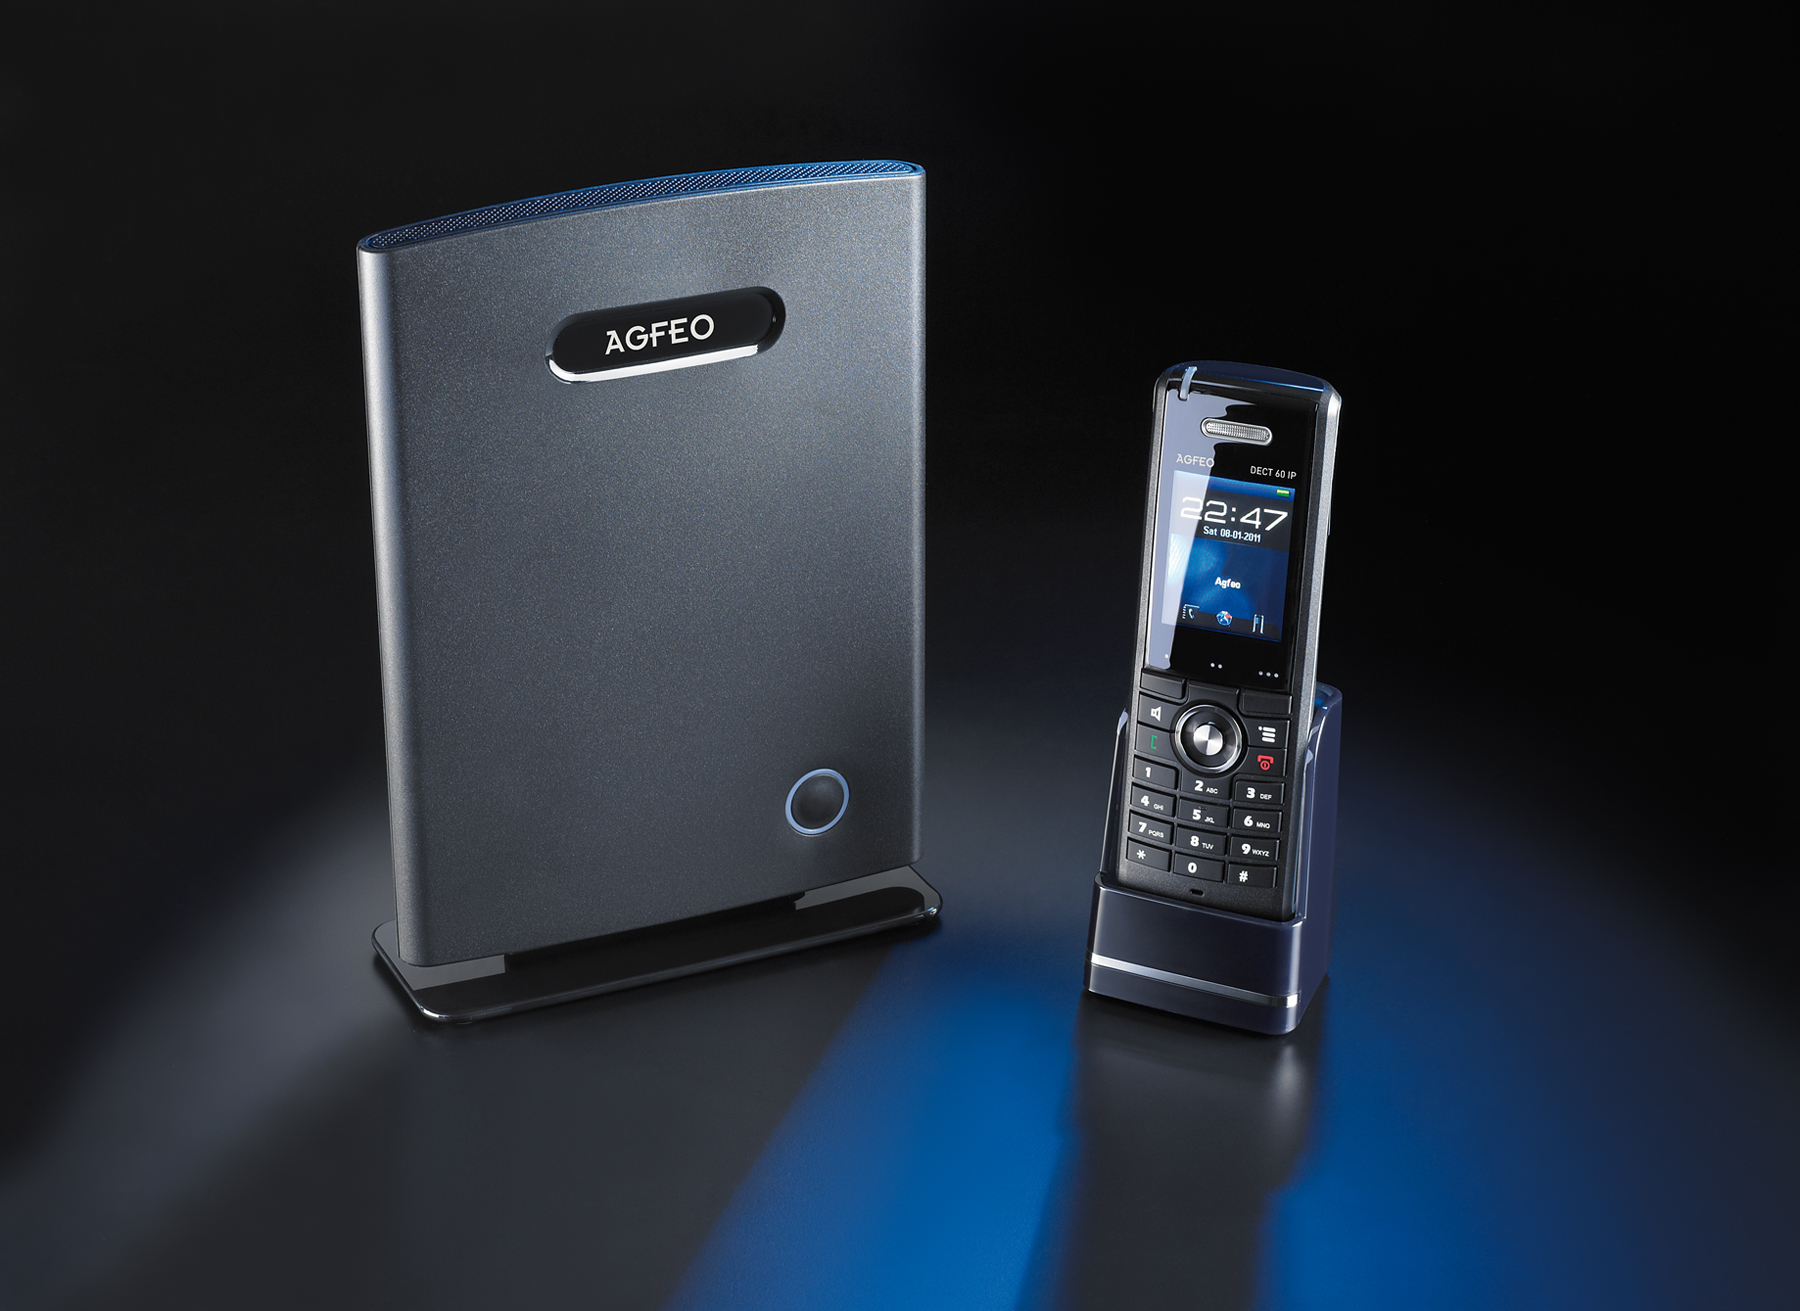 Agfeo DECT 60 IP